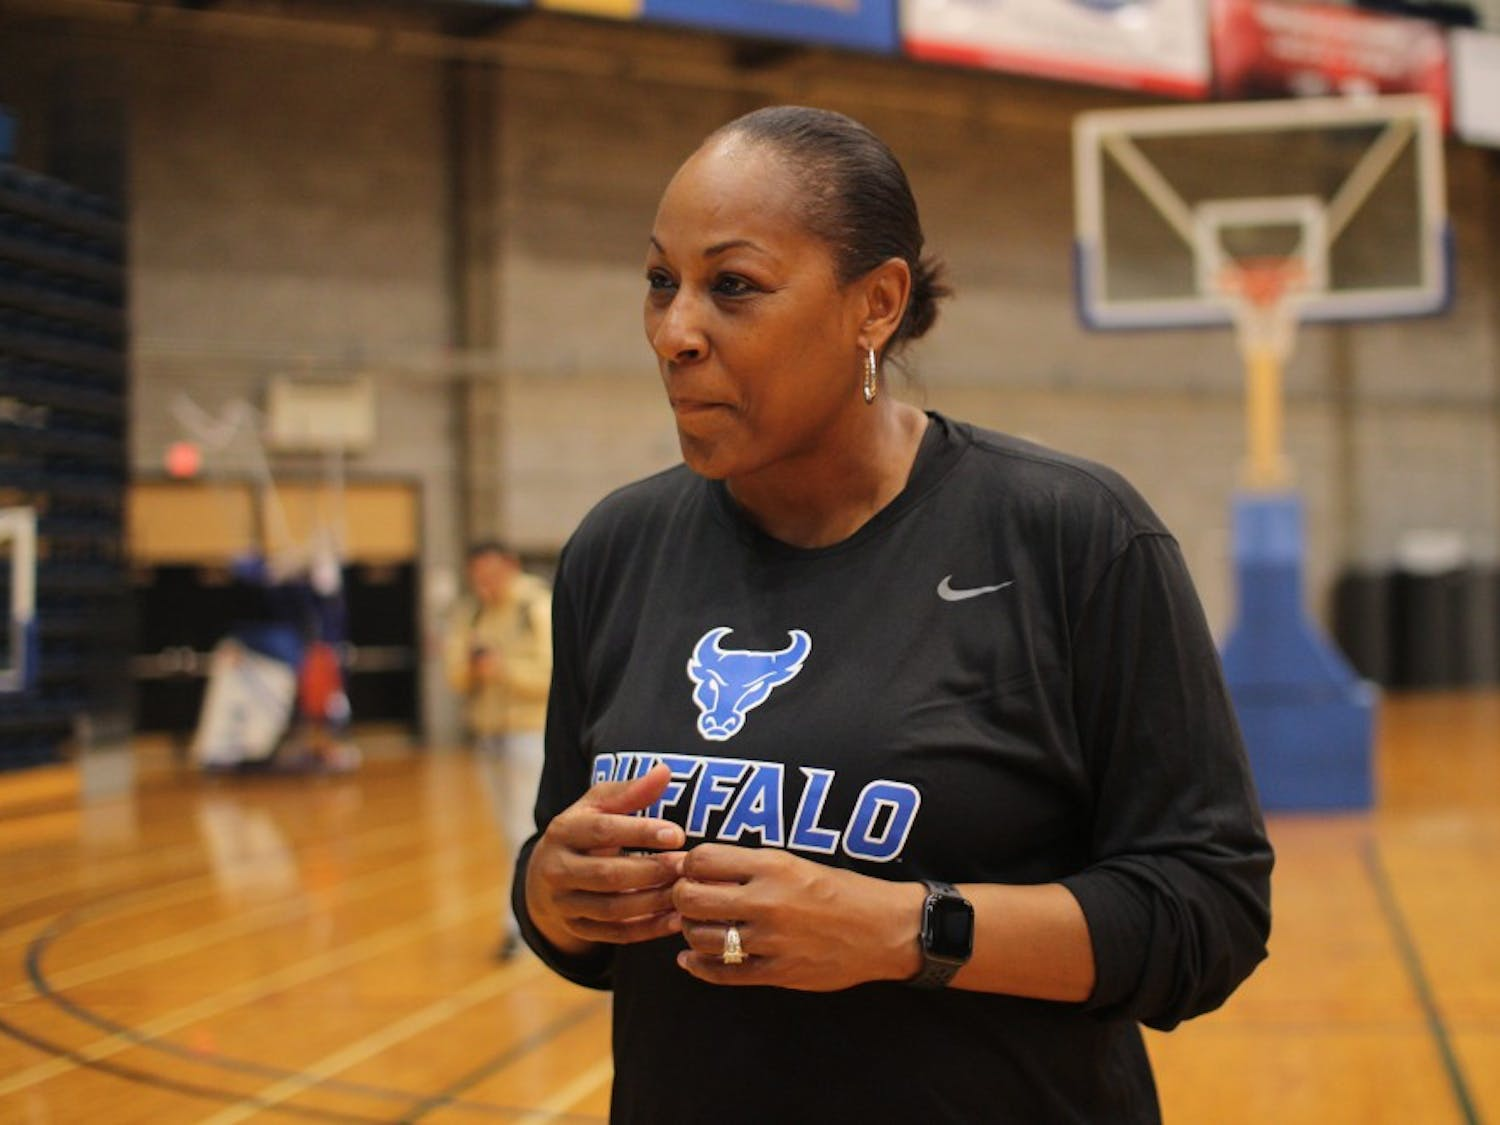 Felisha Legette-Jack, head coach of the women's basketball team at UB, talks about her expectations for the team and its growth this season.